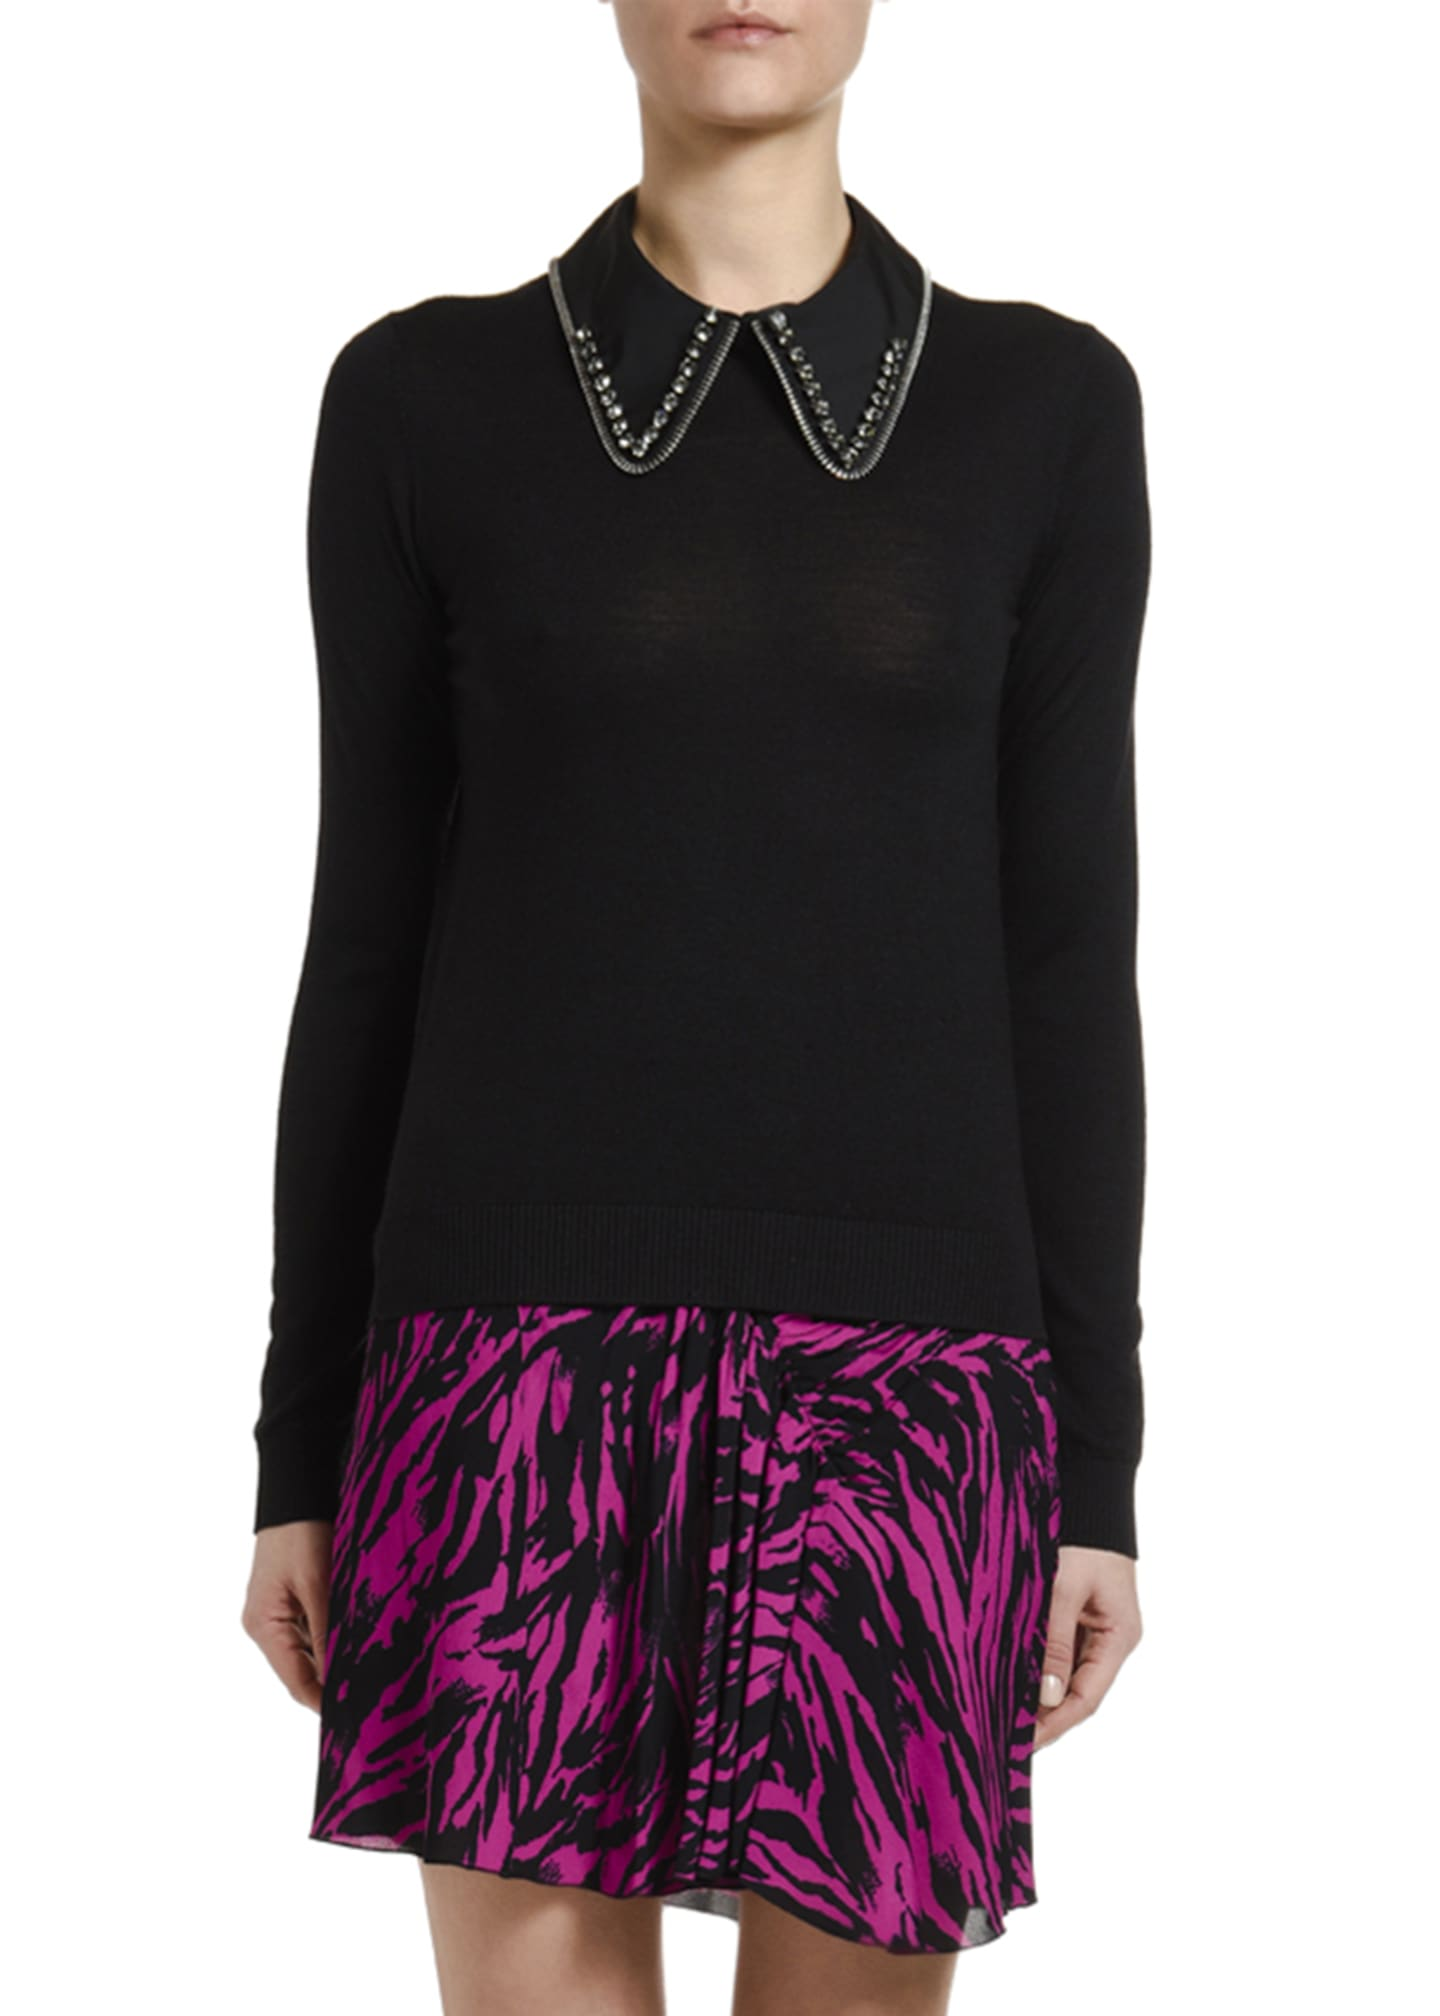 No. 21 Wool-Silk Long-Sleeve Top with Embellished Collar